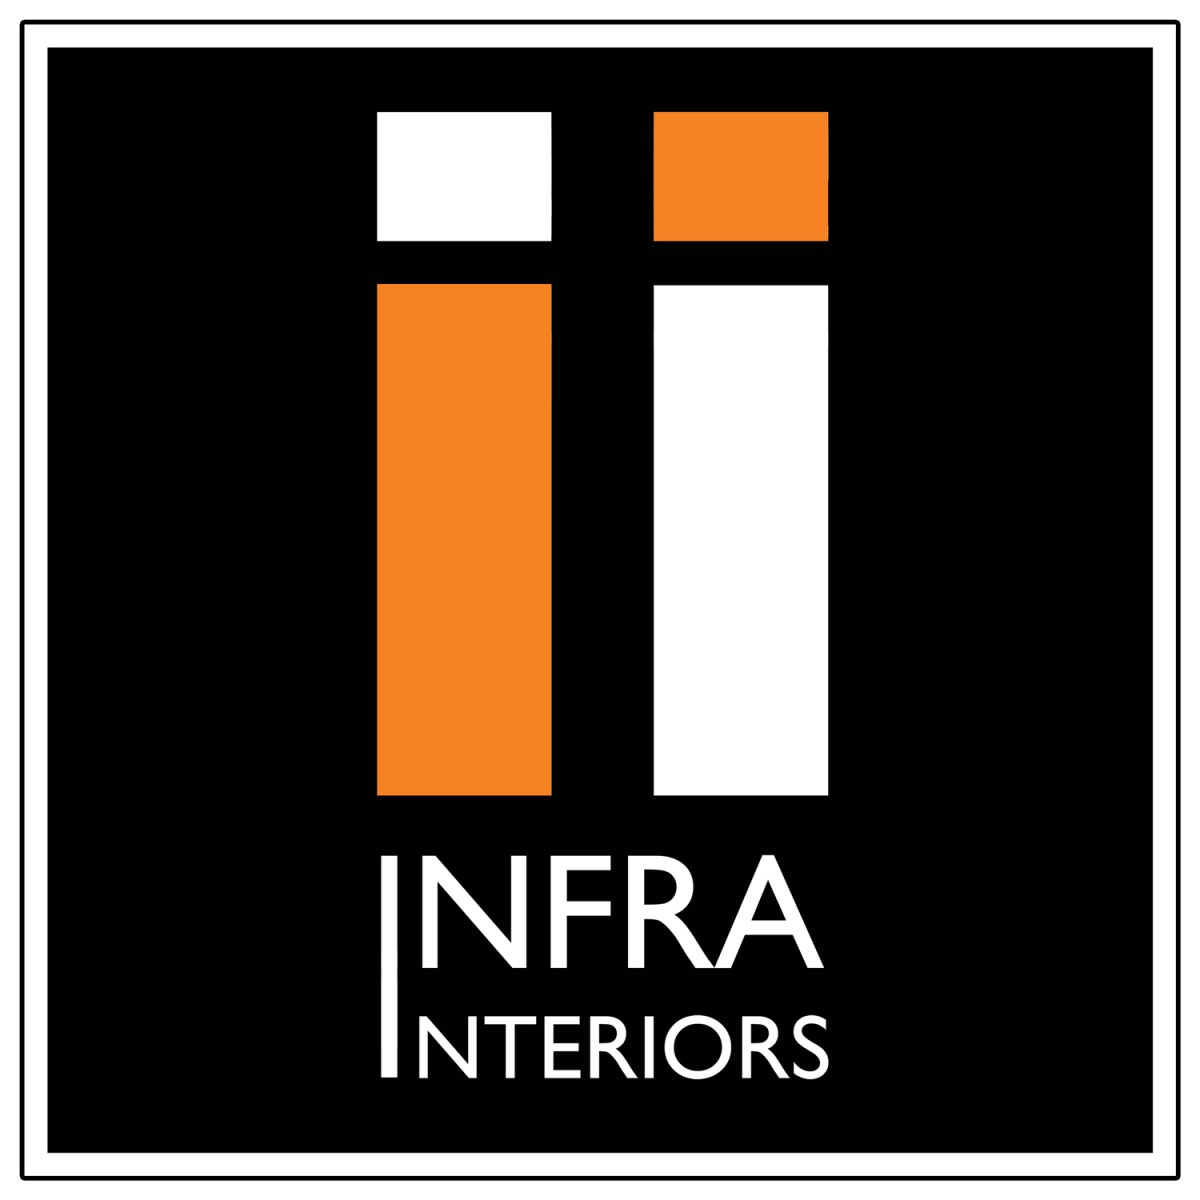 Infra Interiors LLC, Dubai - Space Design Group, India - Interior Design Company